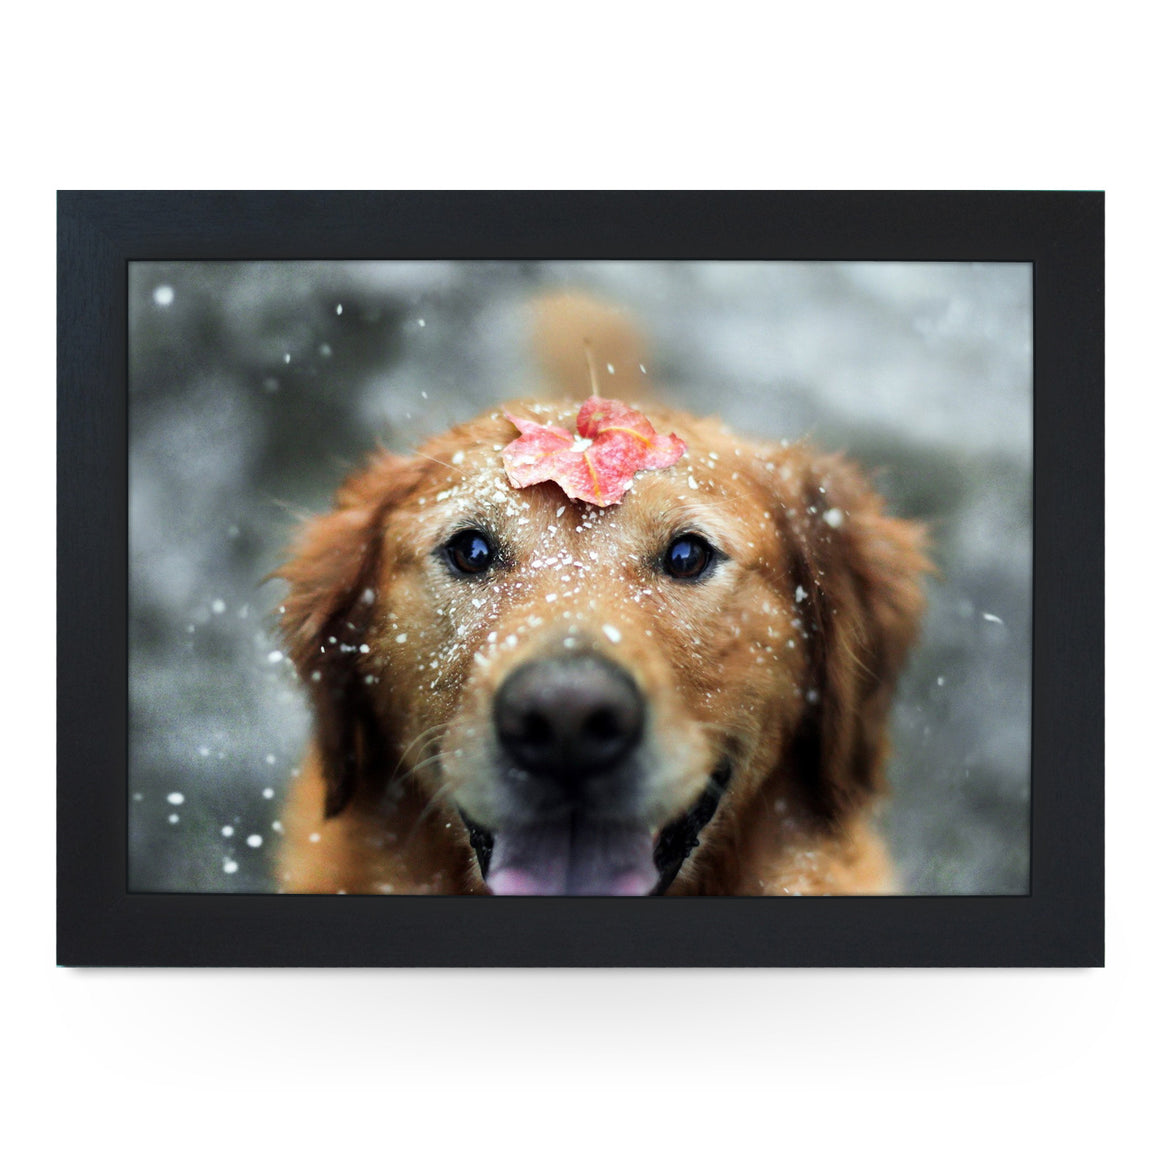 Dog in Snow Lap Tray - L0025